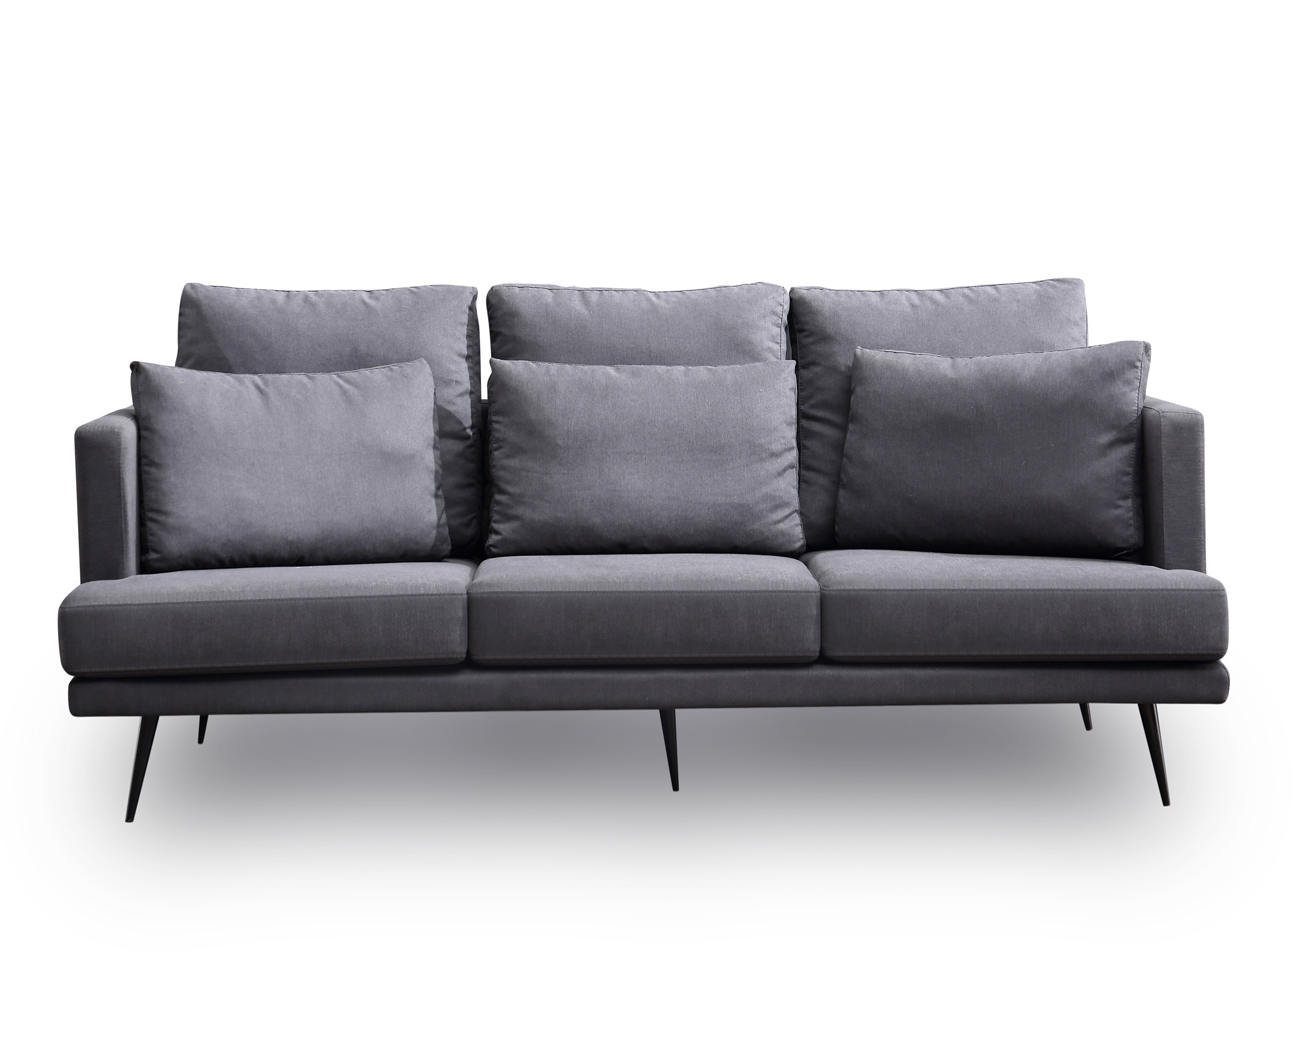 3 Seater Grey Sofa New Urban Loft Industrial Premium By Home Elements